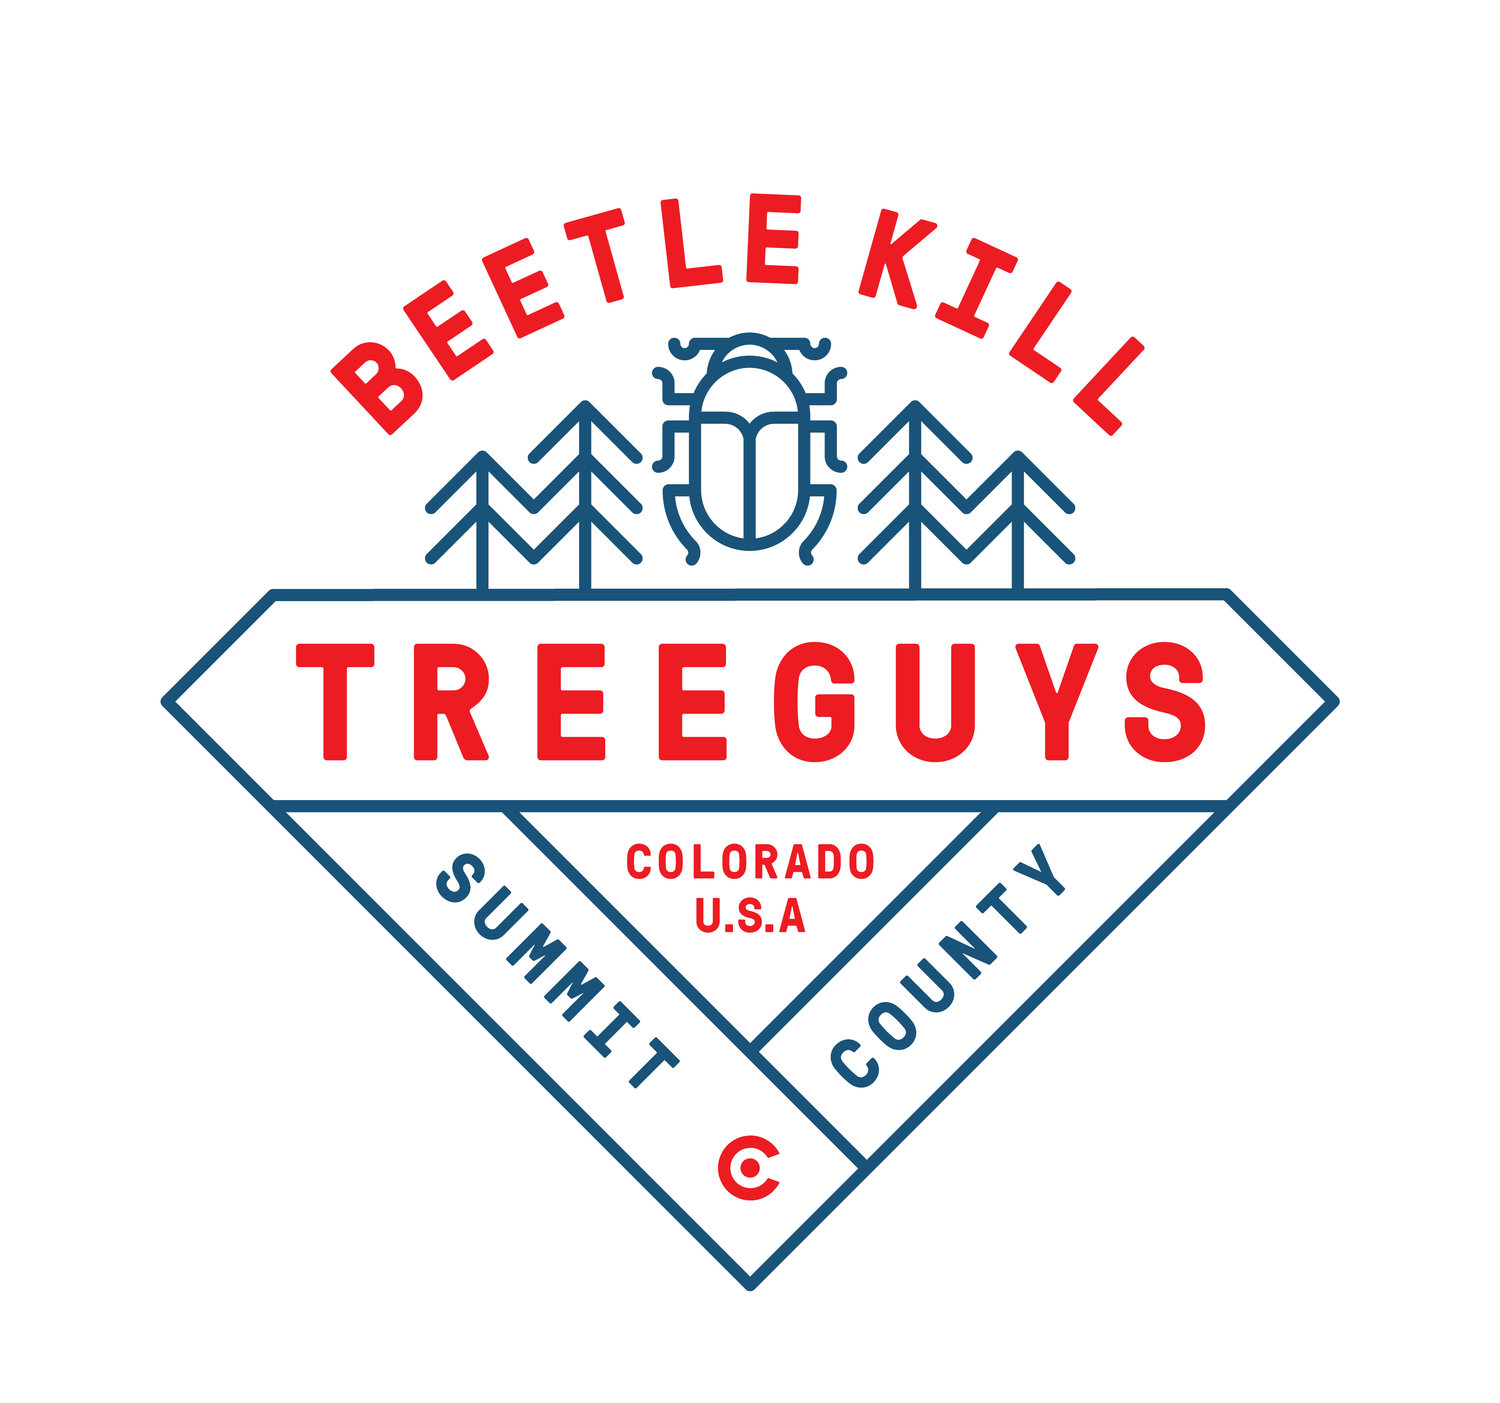 Beetle Kill Tree Guys